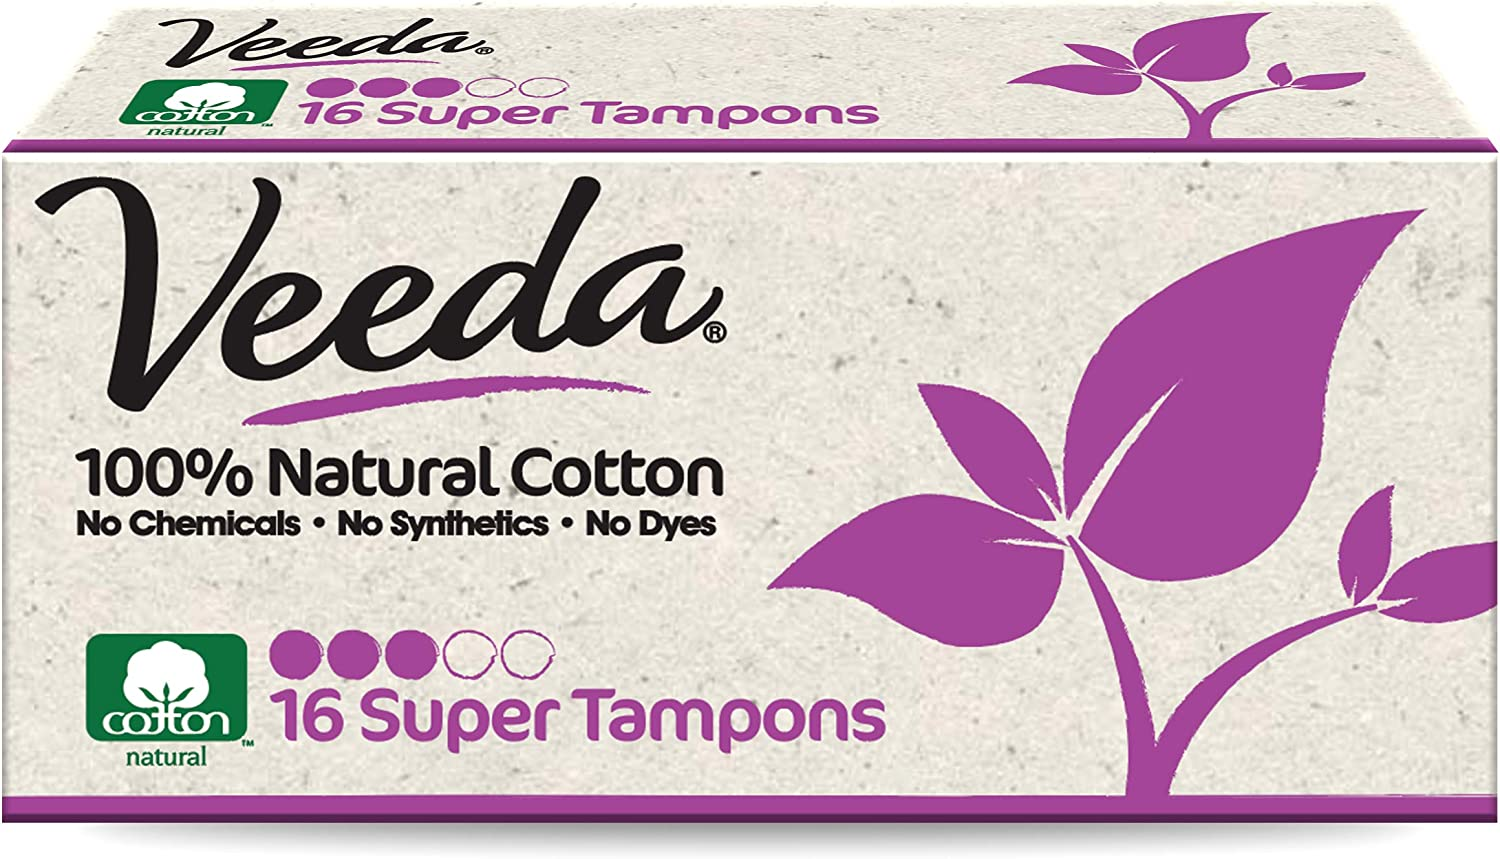 Veeda 100% Natural Cotton Applicator Free Tampons Super Absorbent Comfort Digital Super Tampons Chlorine Toxin and Pesticide Free, 16 Count